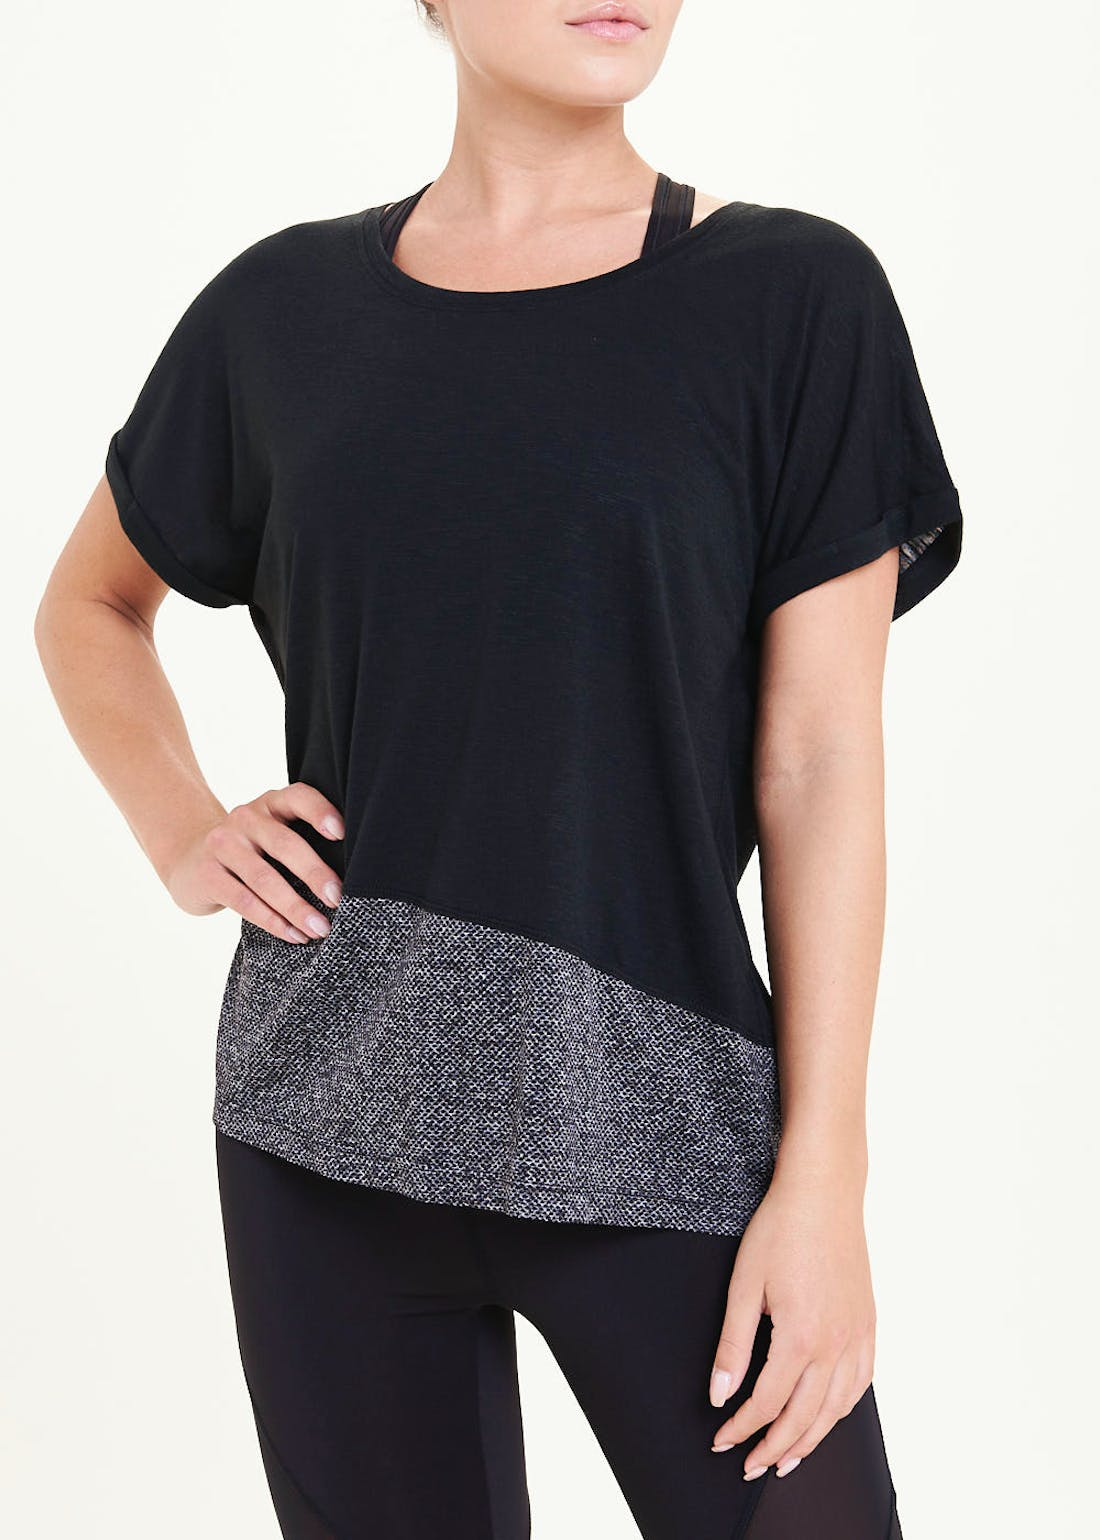 Souluxe Black Mesh Panel Gym T-Shirt